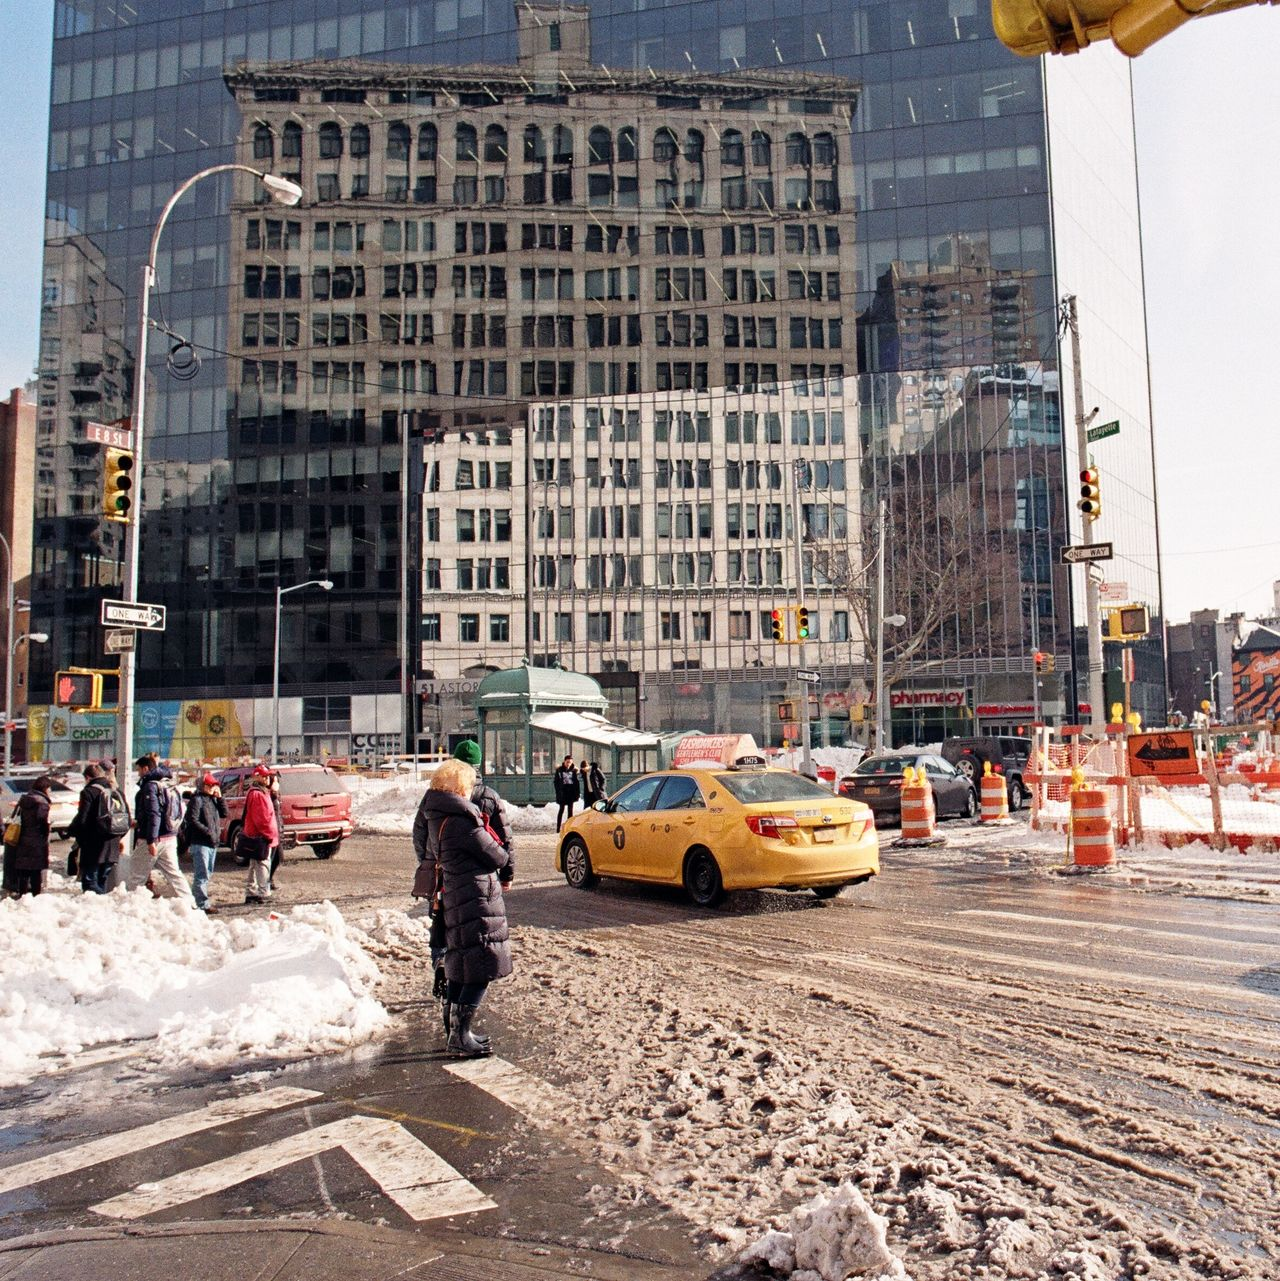 East Village, January 2016 City City Street Yellow Taxi Yellow Cab Nyctaxi Snow Reflection On Building Lomography Color Negative 100 35mm Film Film Photography Ishootfilm Elan7 Street Photography Streetphotography Streetphoto_color